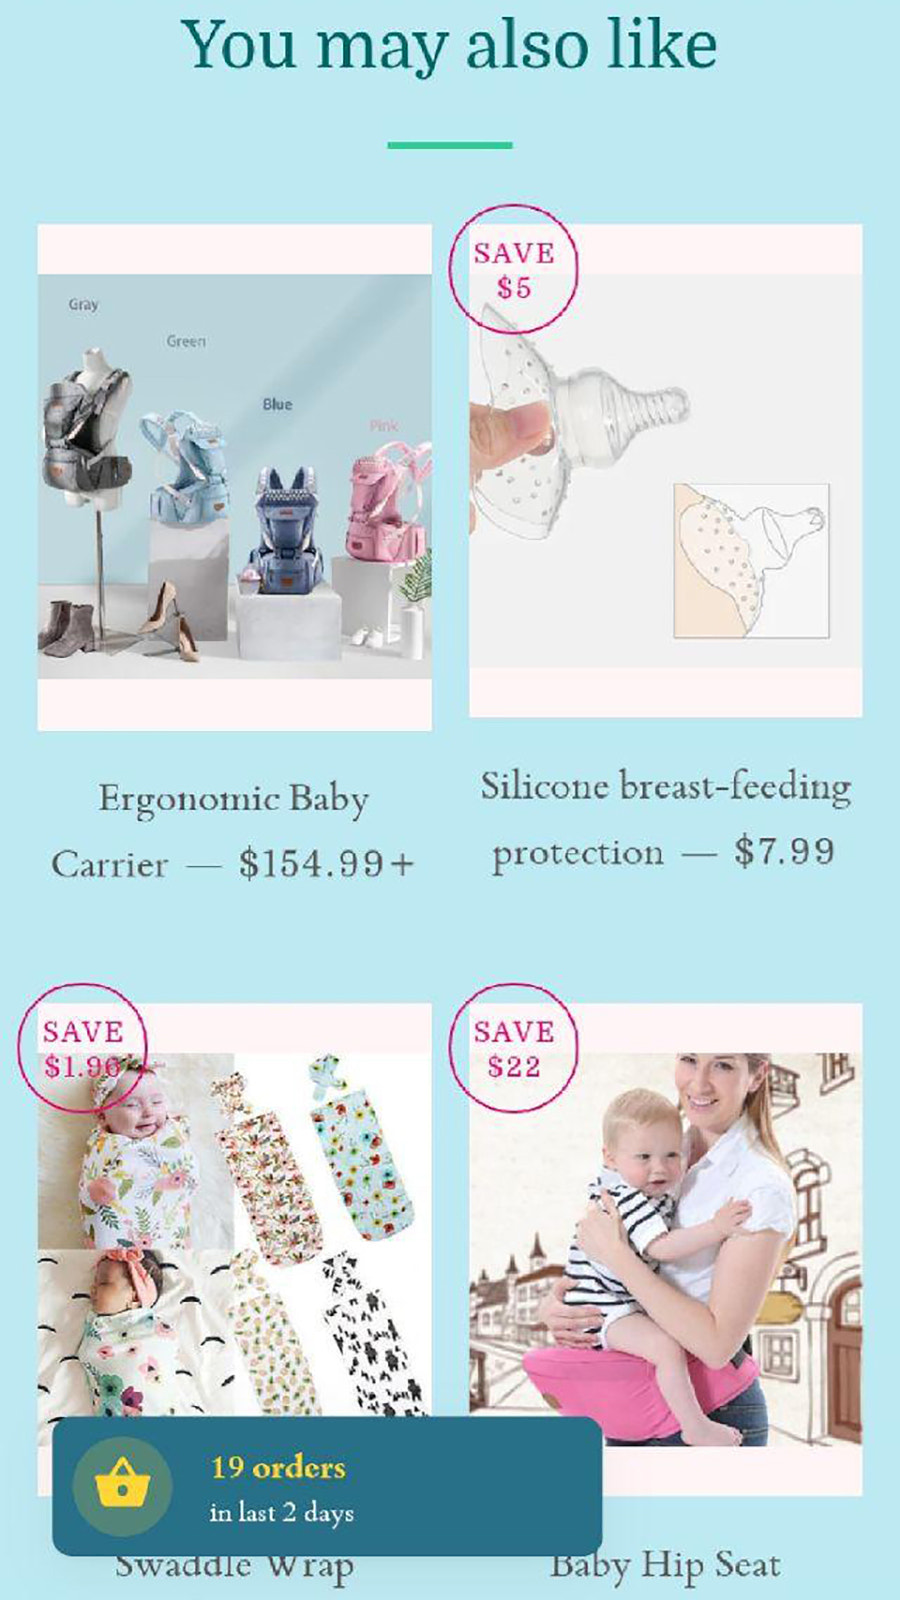 You may also like carousel with Related Products for your store